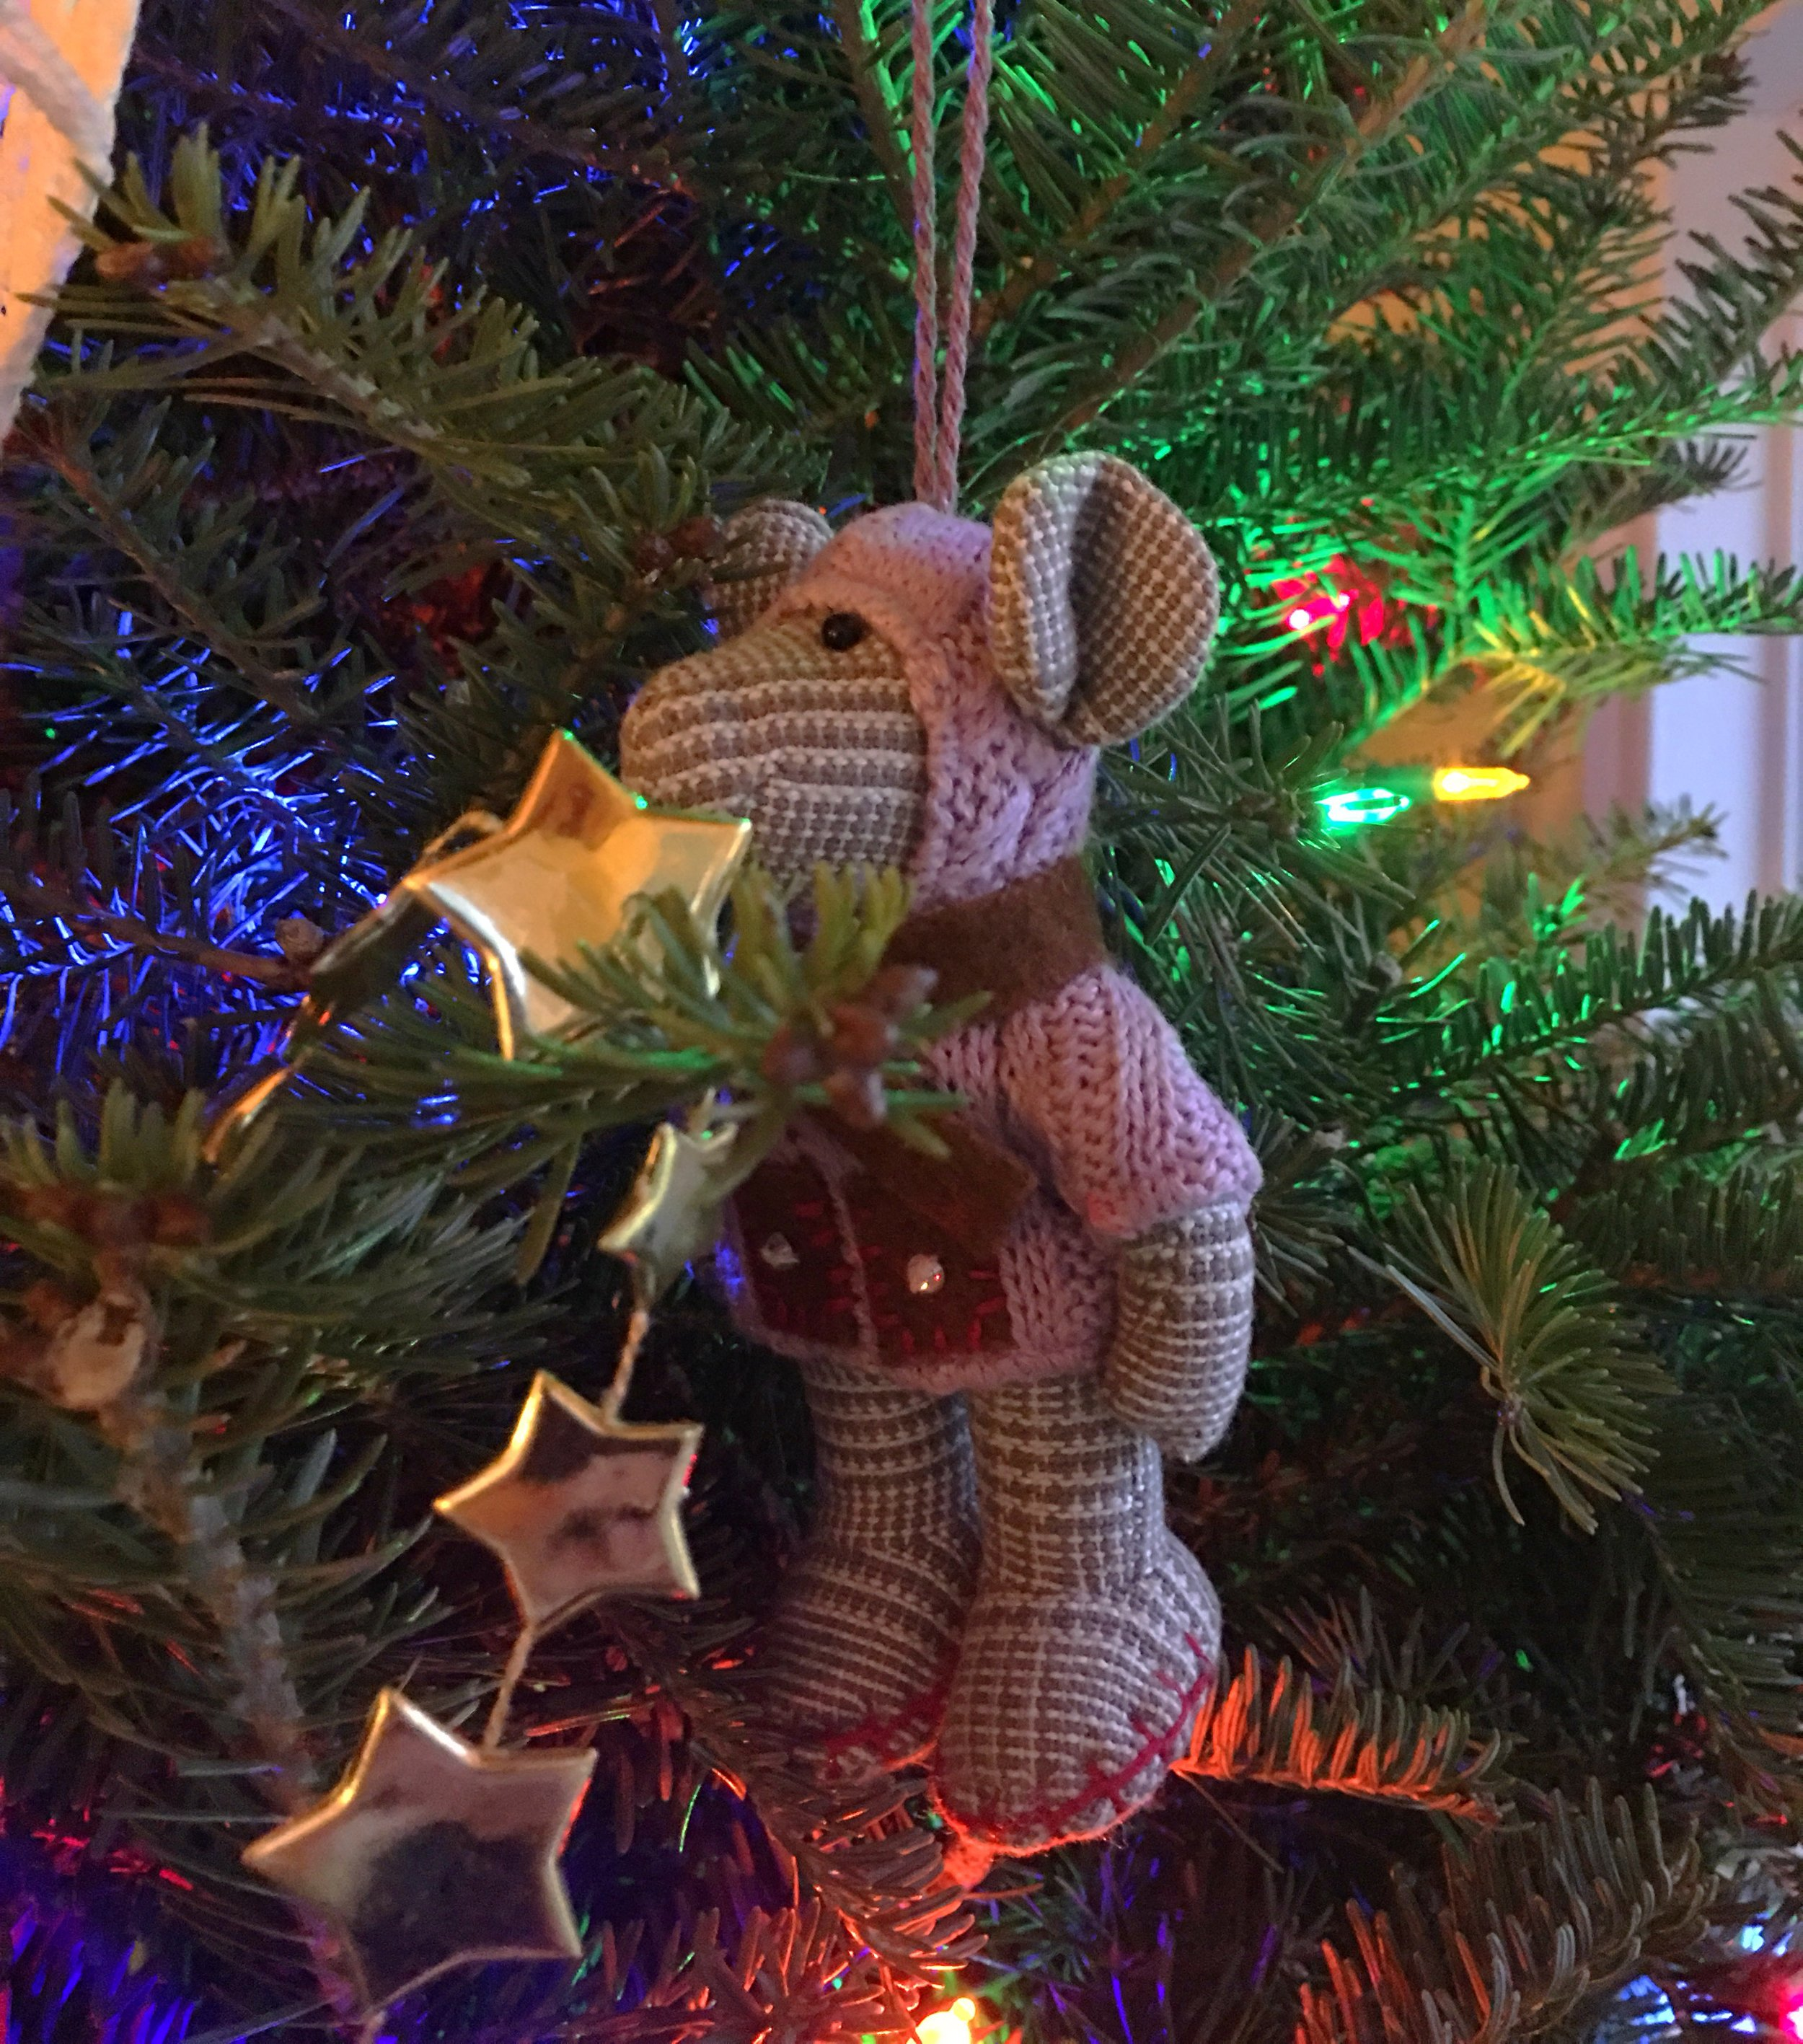 Could this ornament be any cuter?